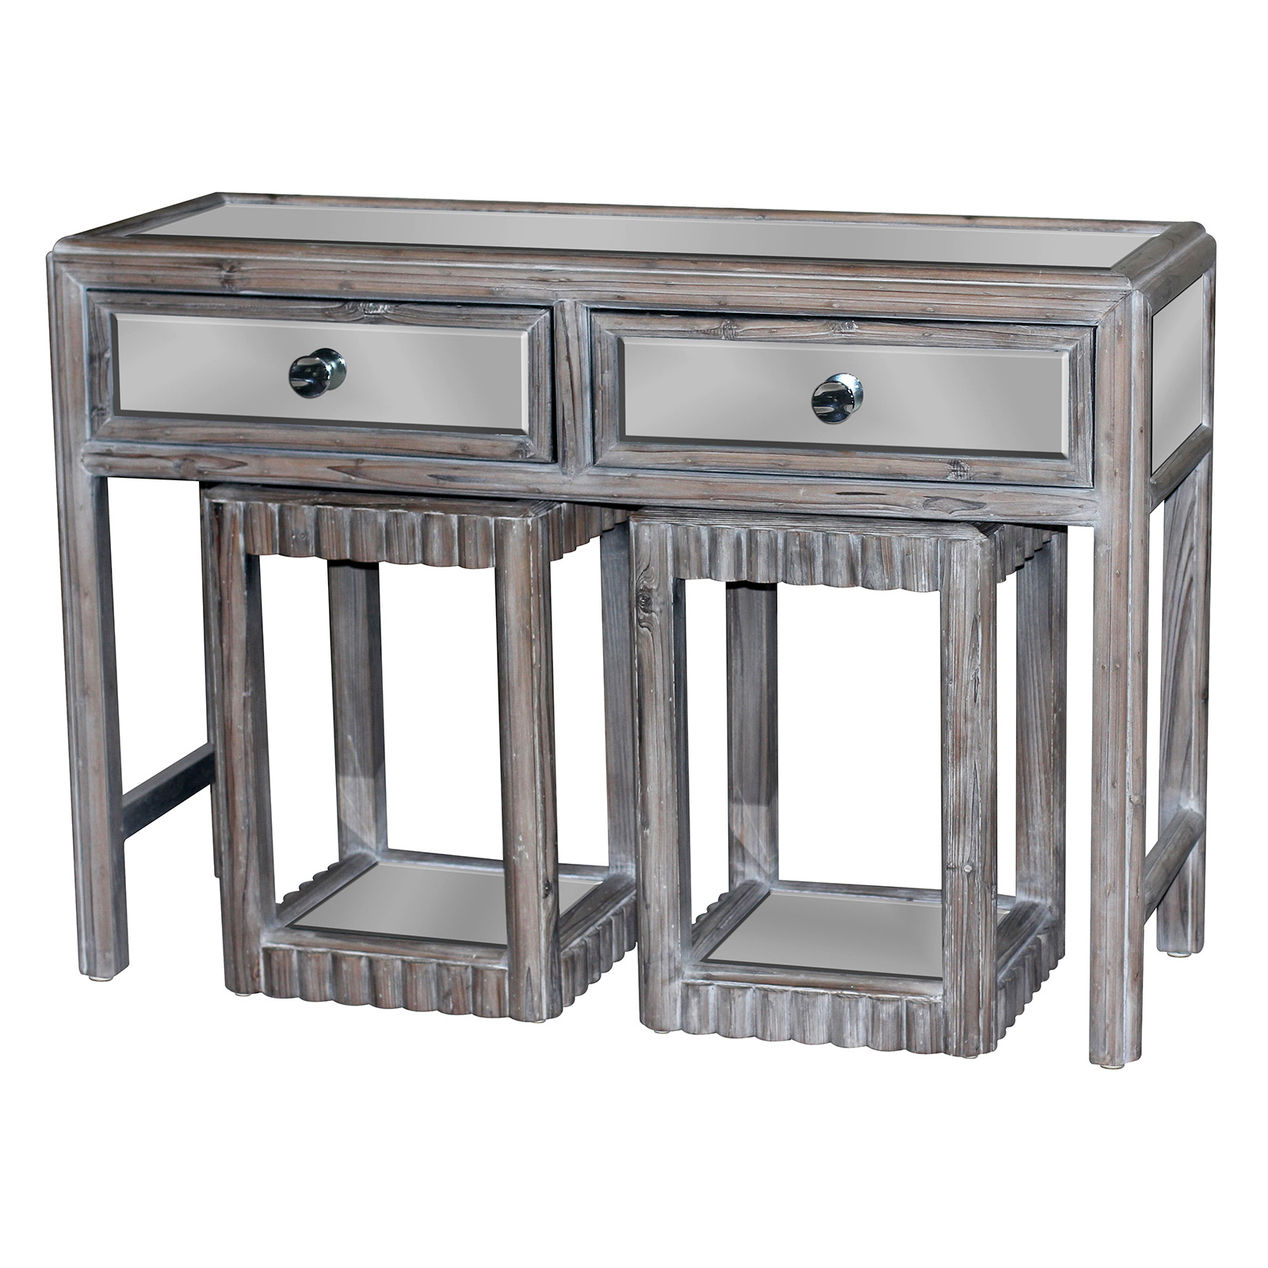 mirrored bamboo accent table each and the desk sold white separately modern marble coffee living room end sets rocking chair carpet reducer strip patio swing cover hairpin side